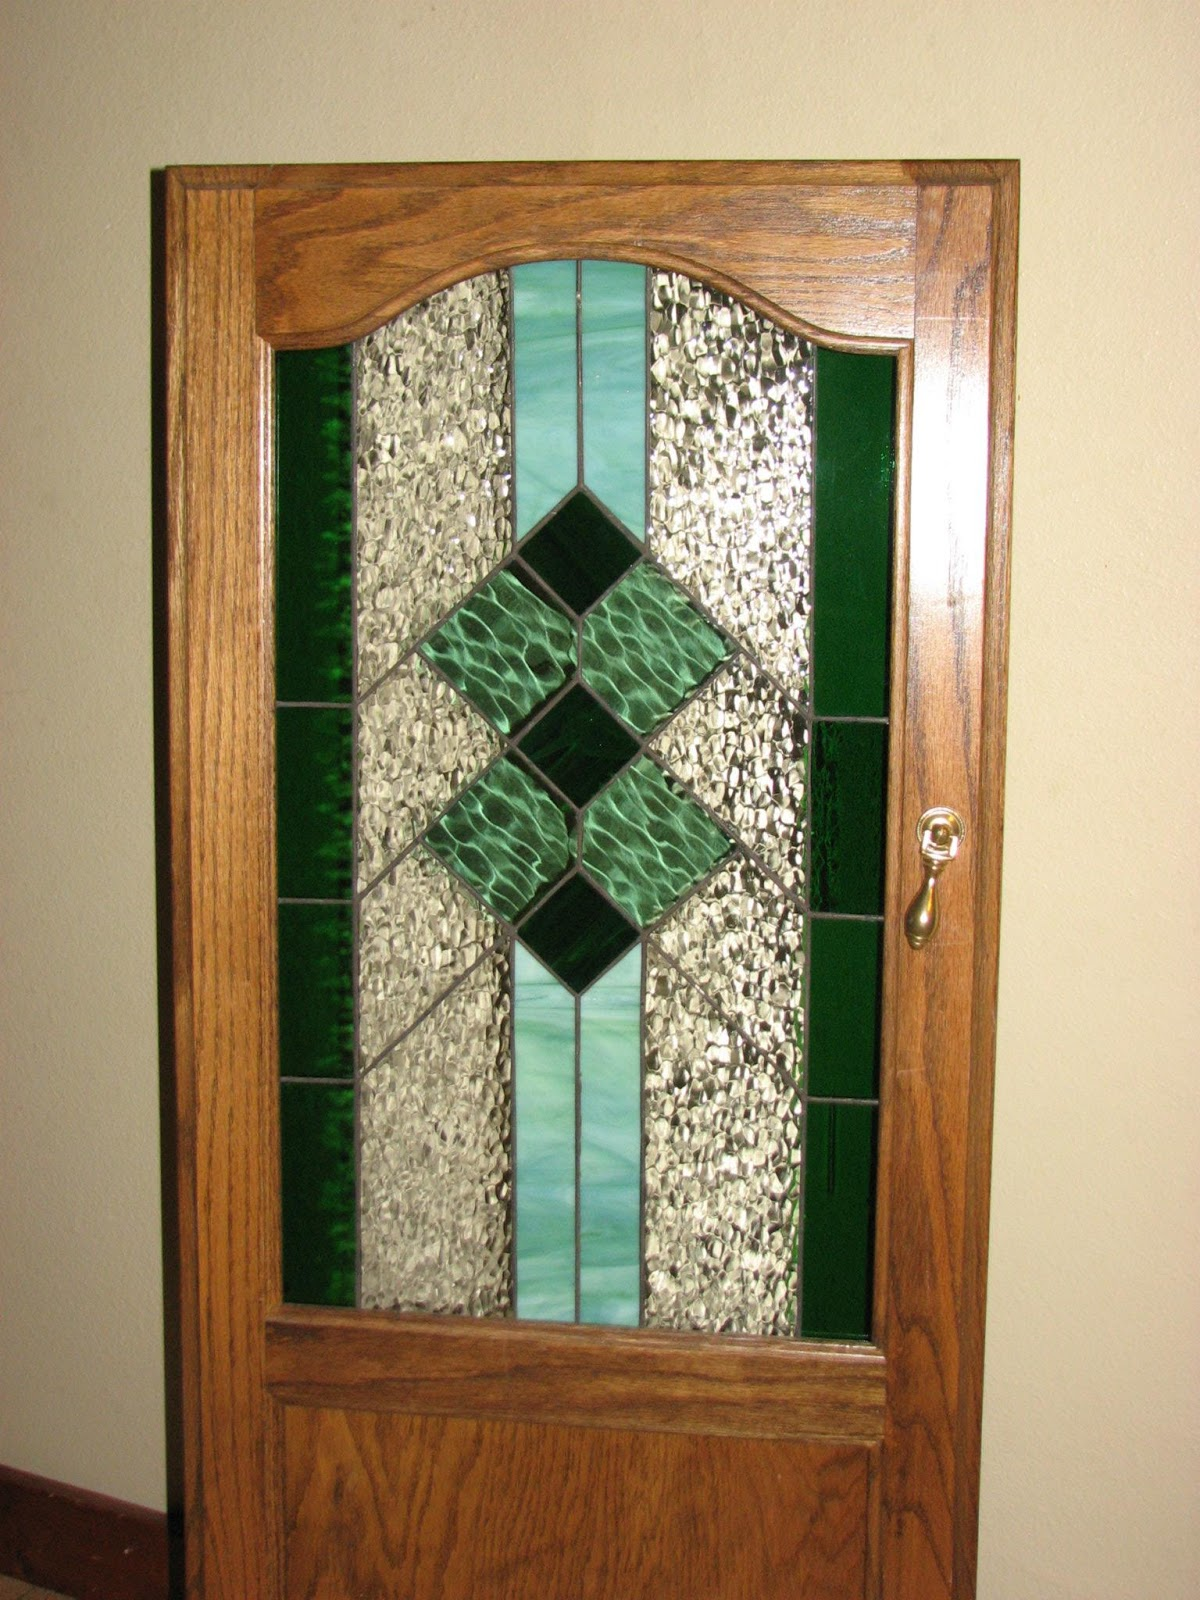 Everyday Handmade Stained Glass Window Replacement Project